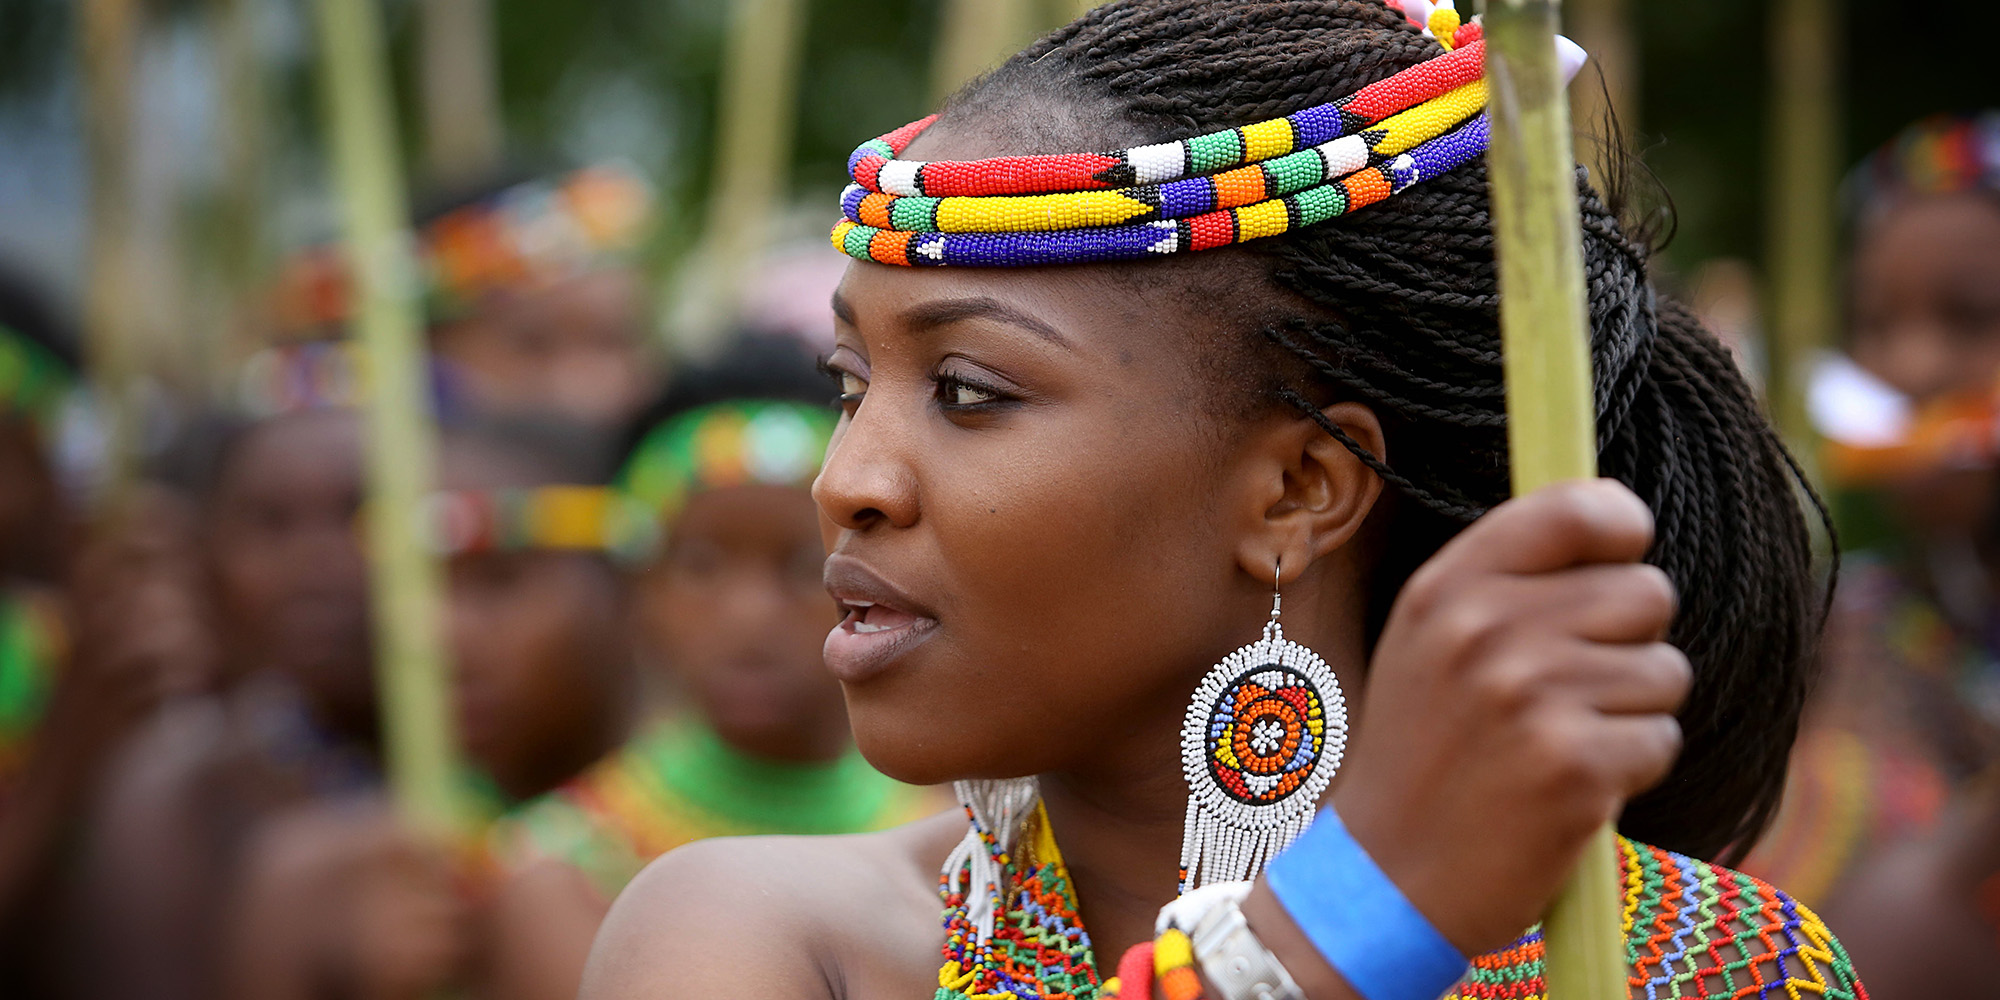 Traditional Ceremonial Attire of Zulu tribes reed dance